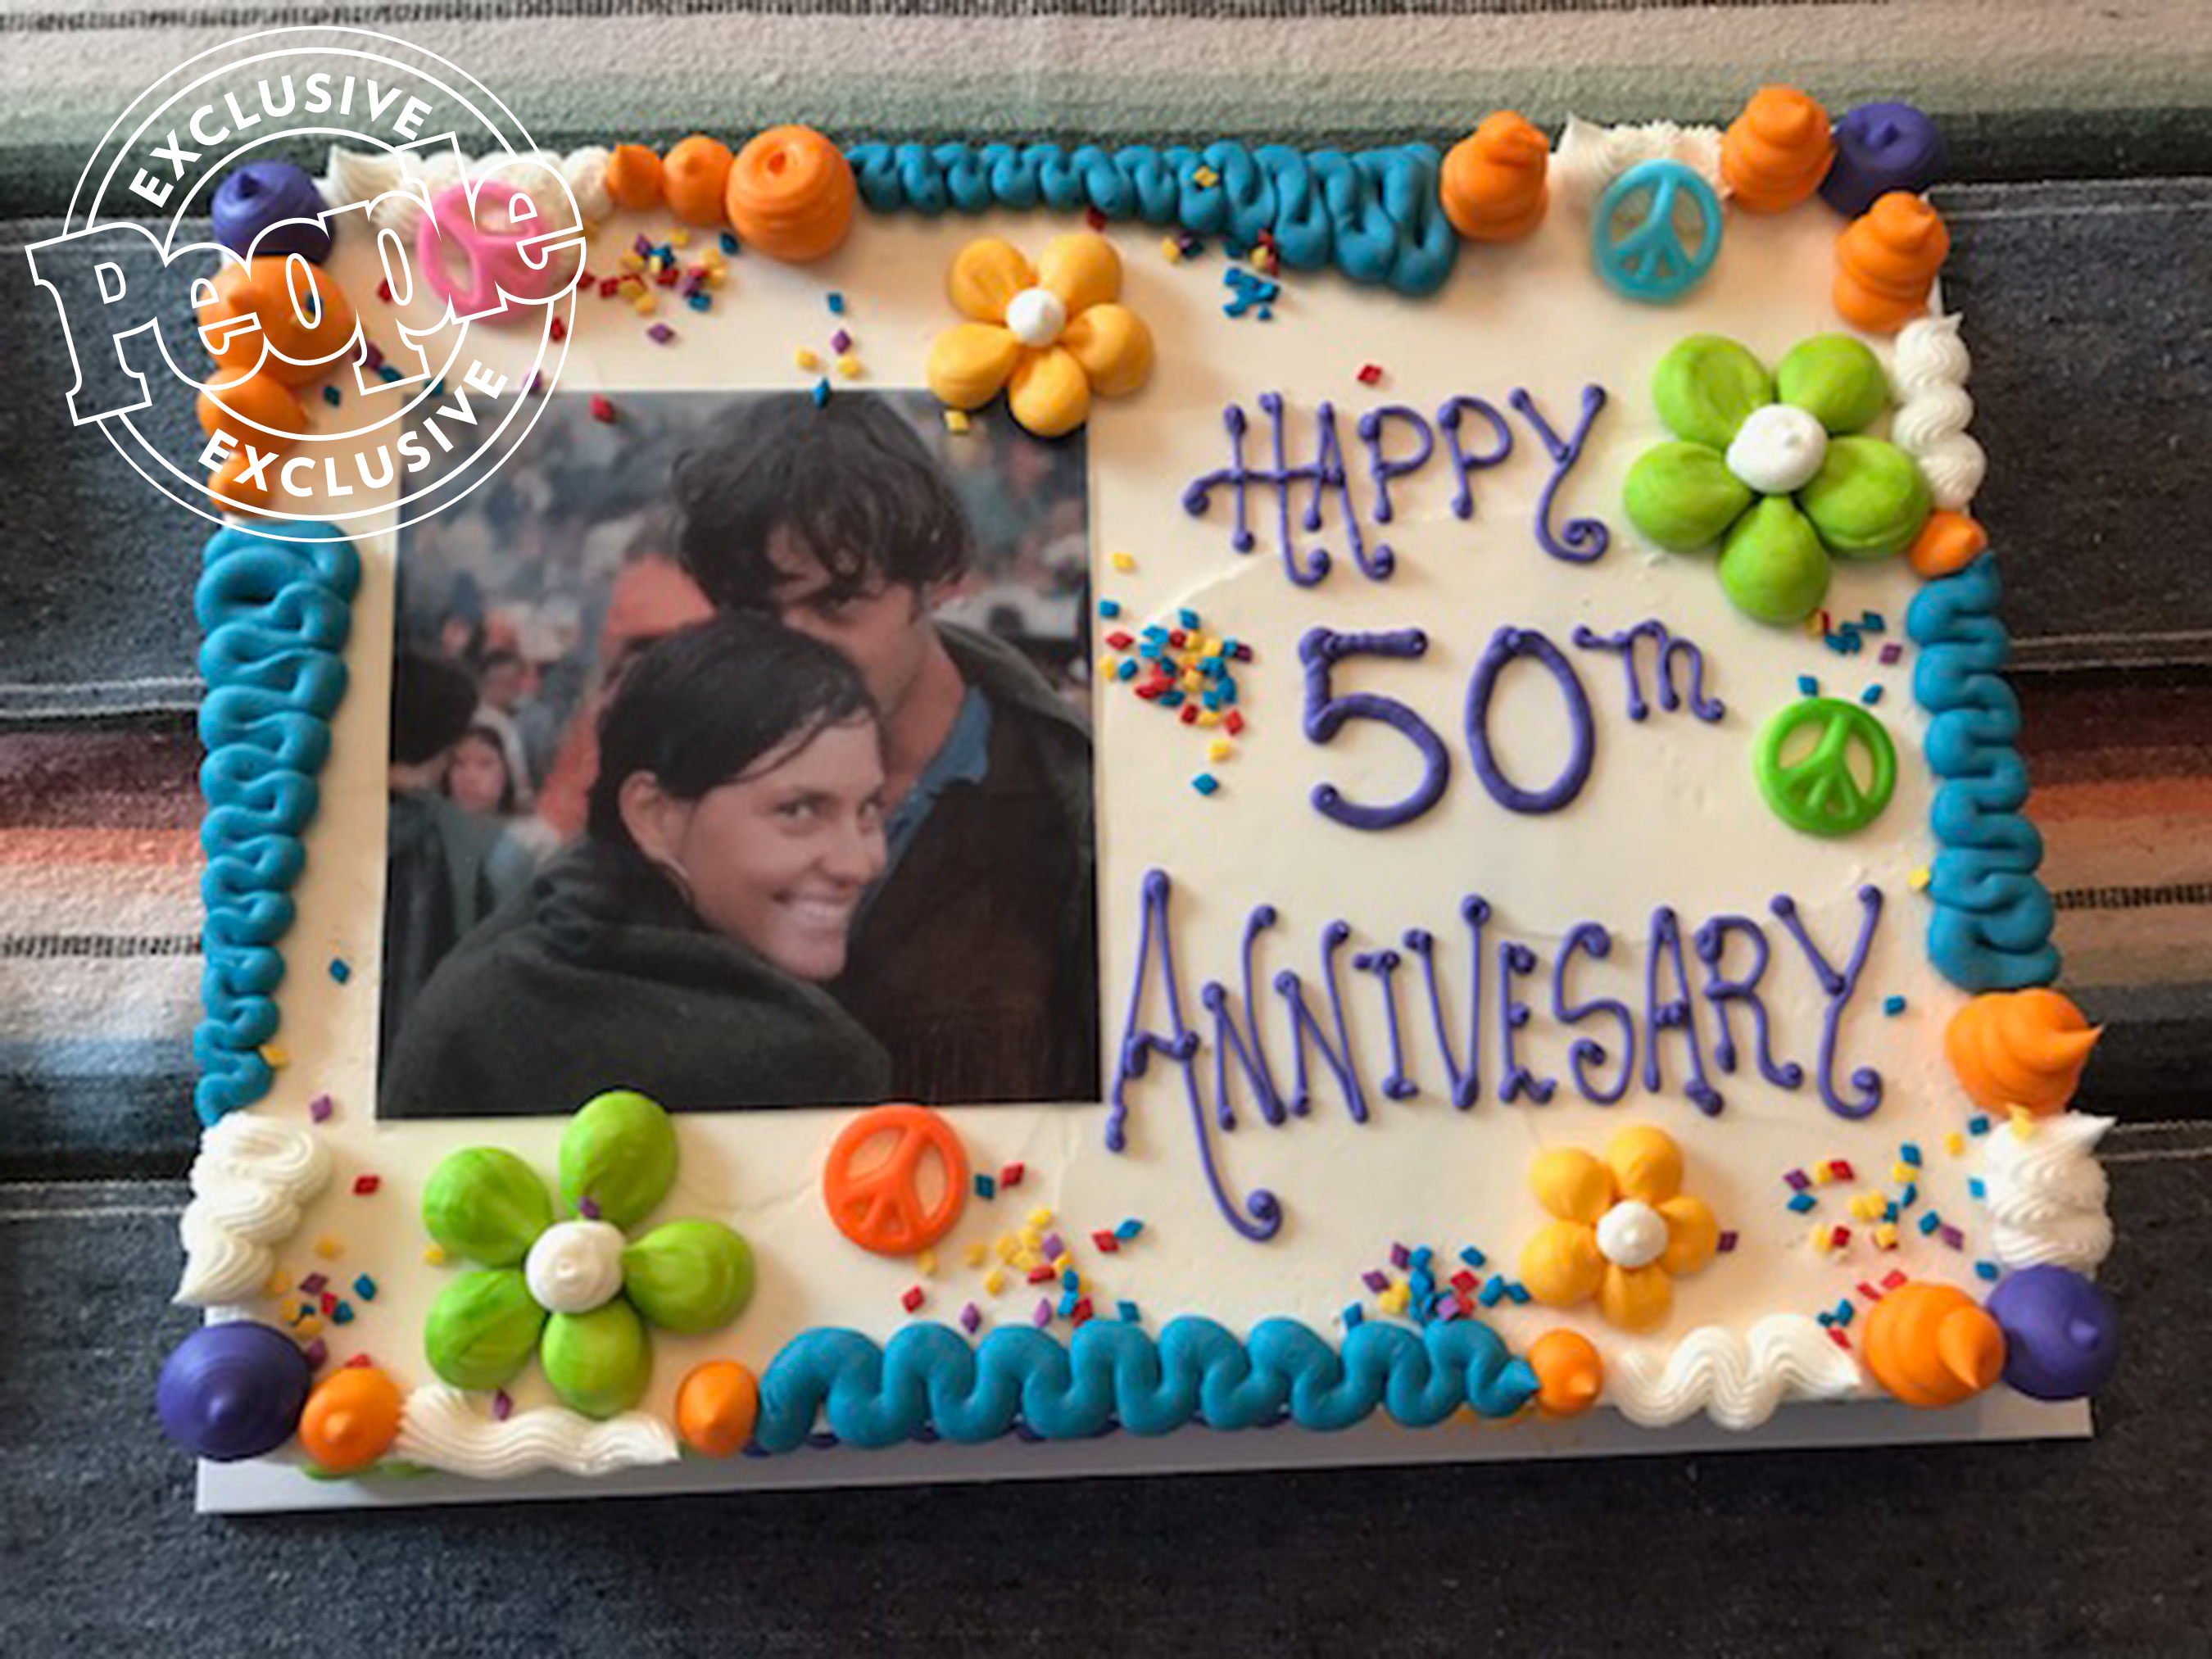 Couple Who Met at Woodstock Celebrates 50th Anniversary with Surprise Cake from Family